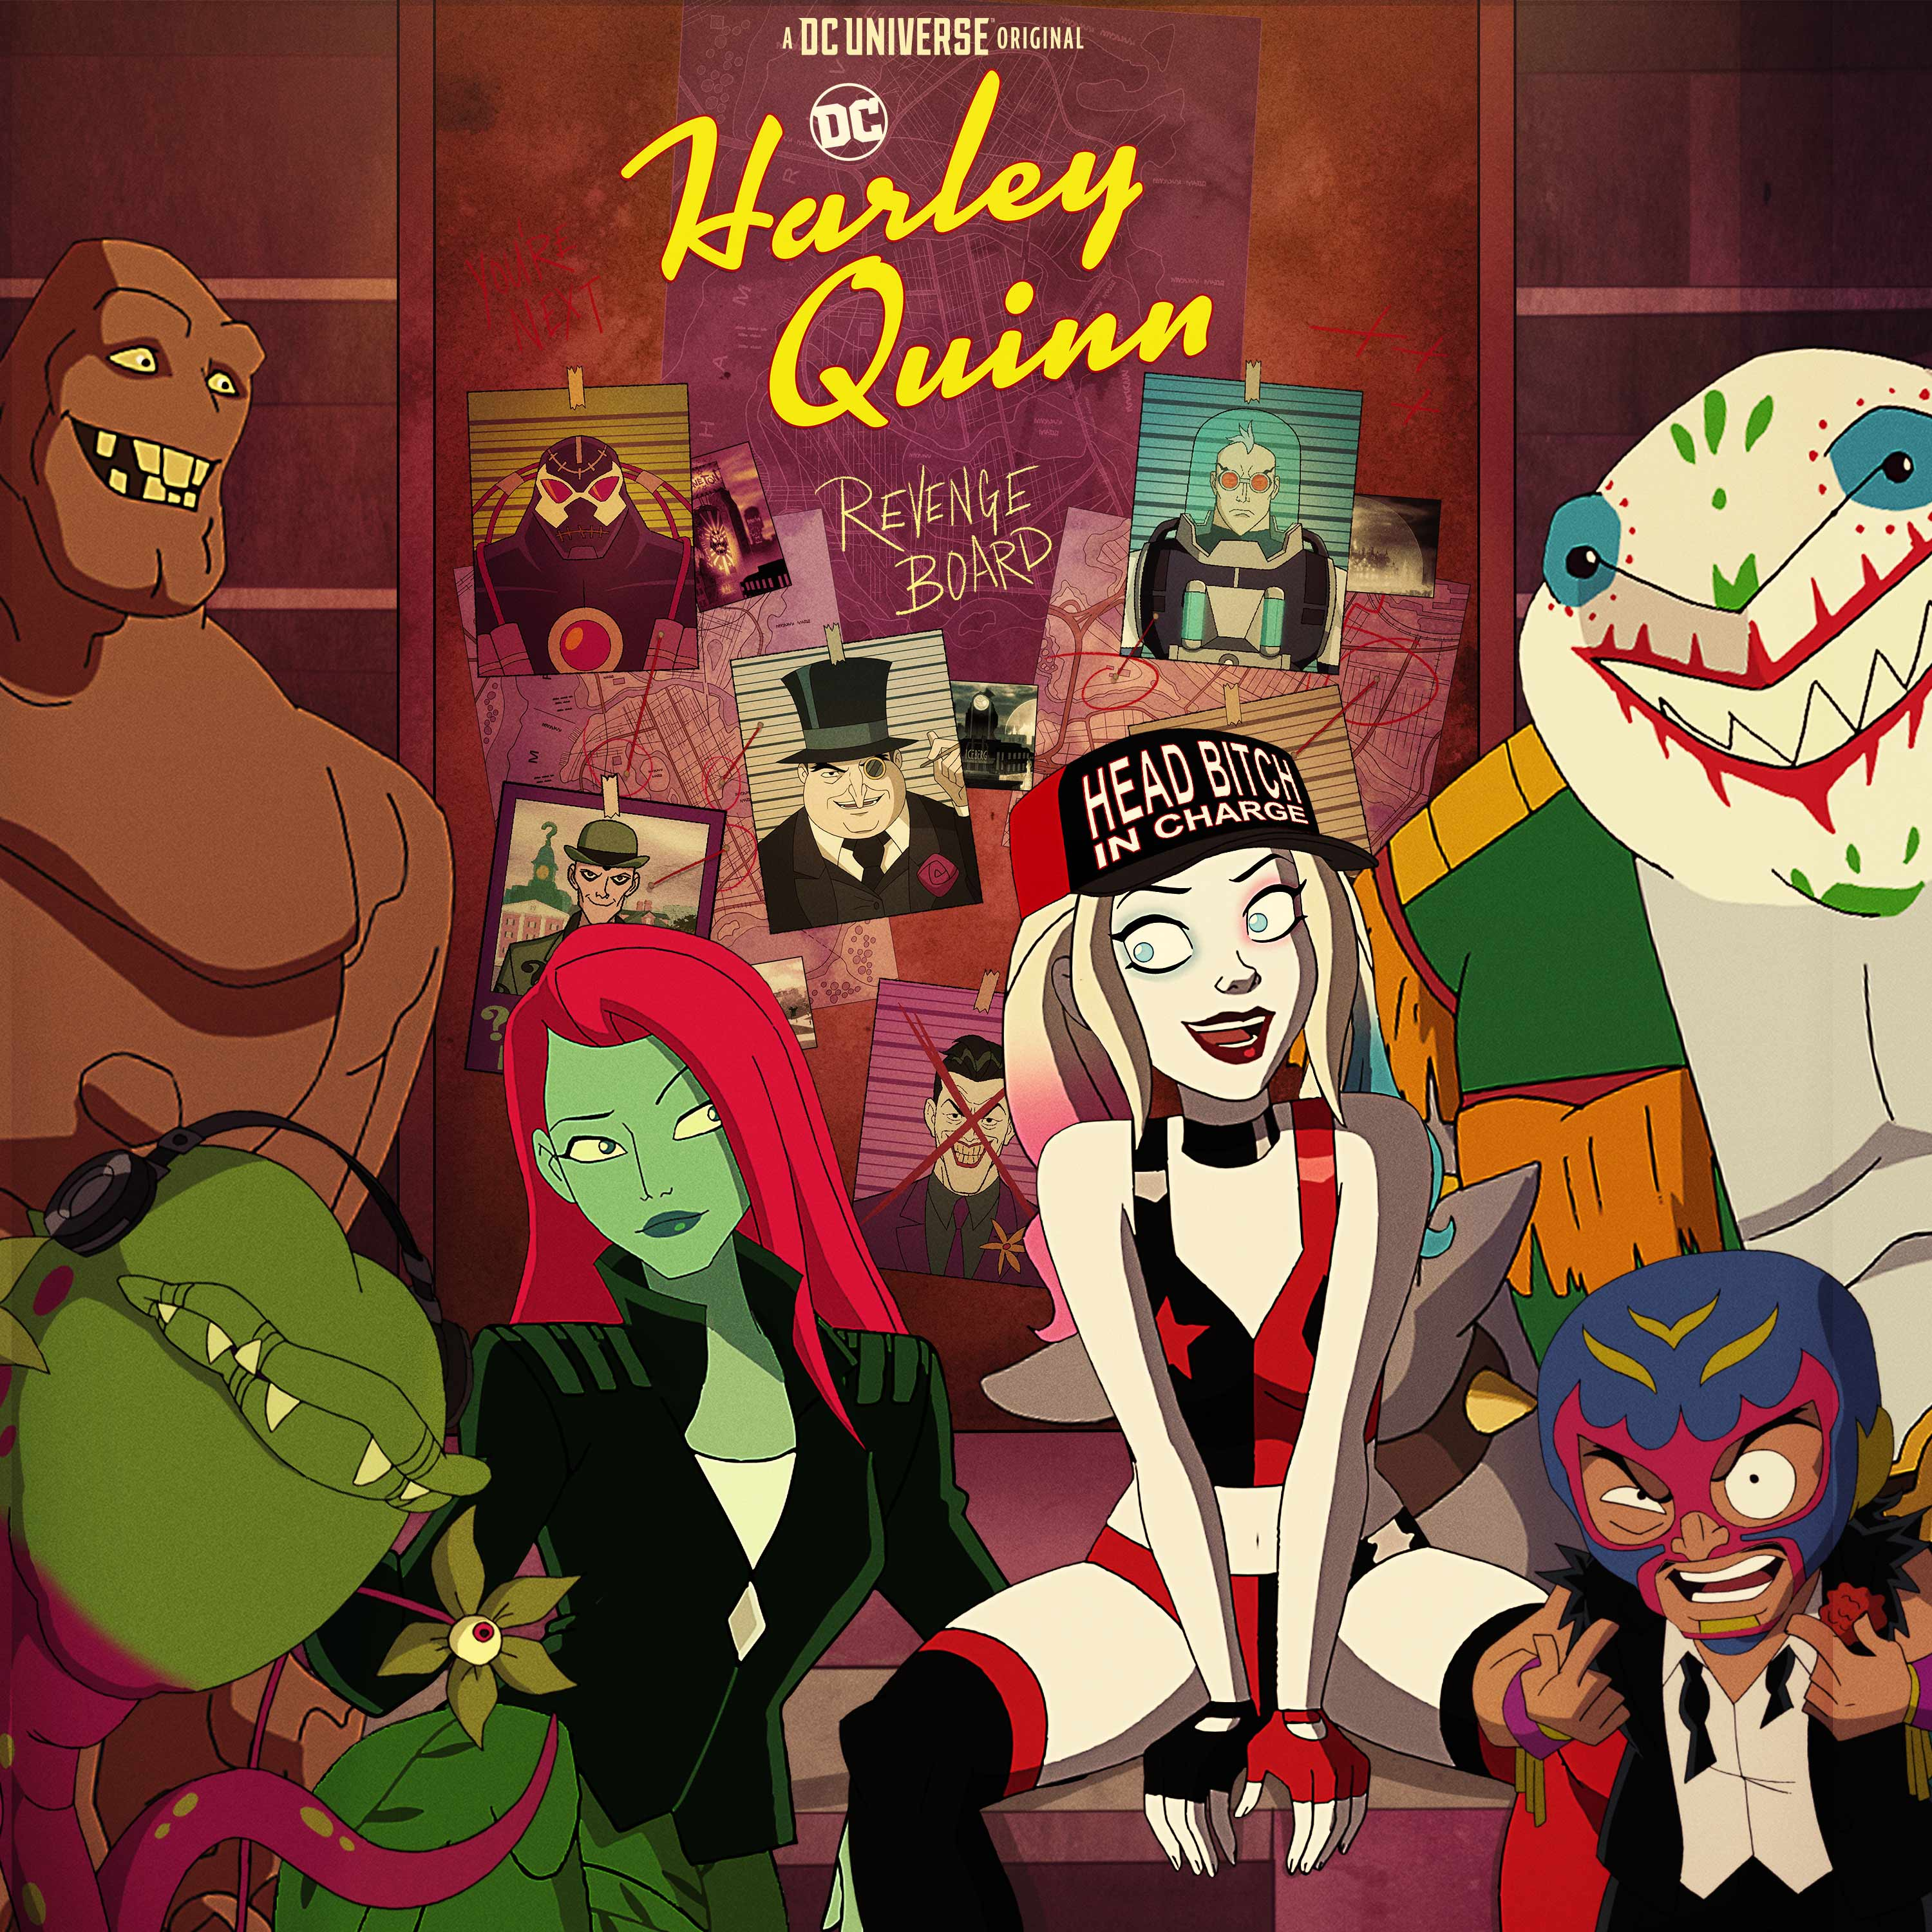 Watch Harley Quinn Season 2 on DC Universe